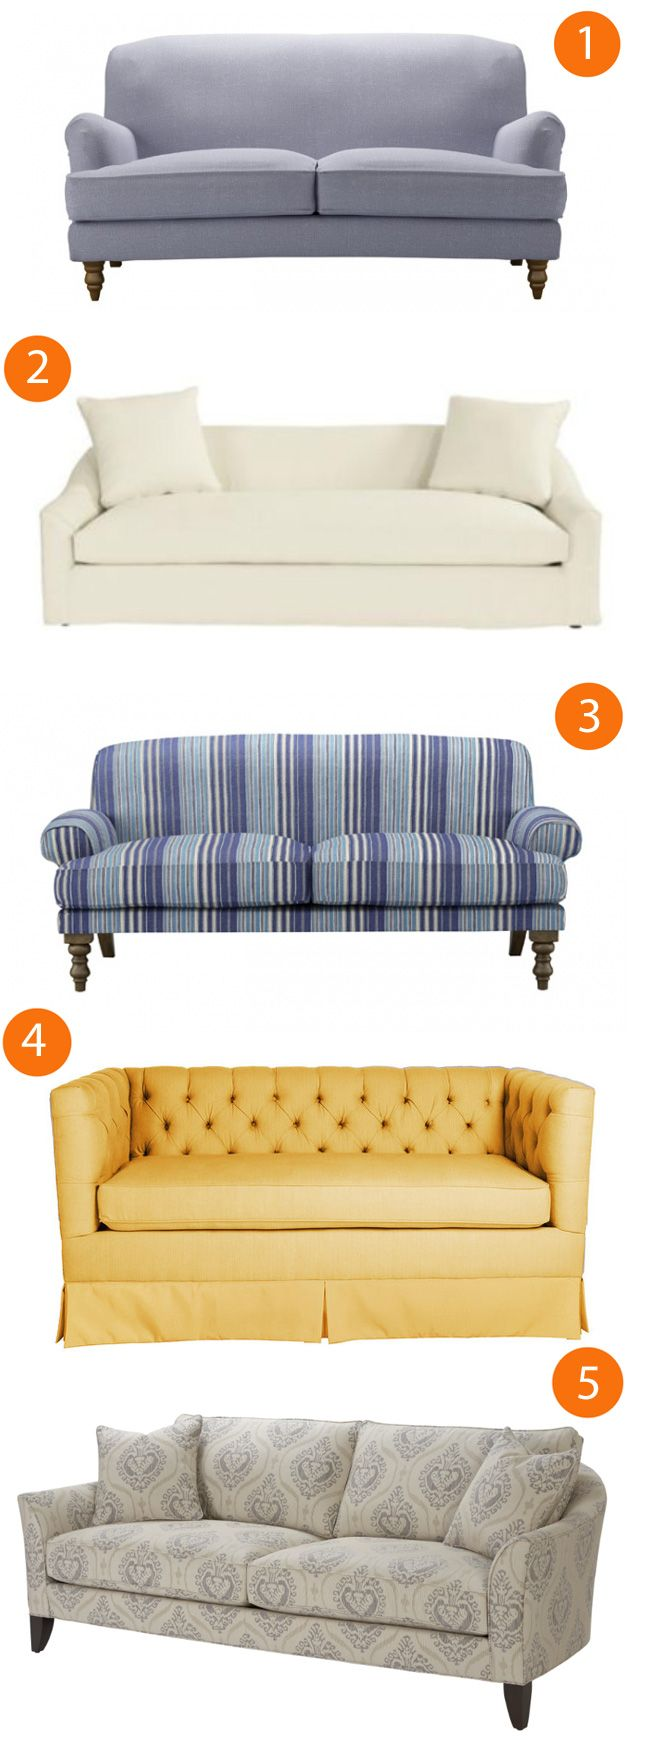 60 best sofa images on pinterest sofas family room and living